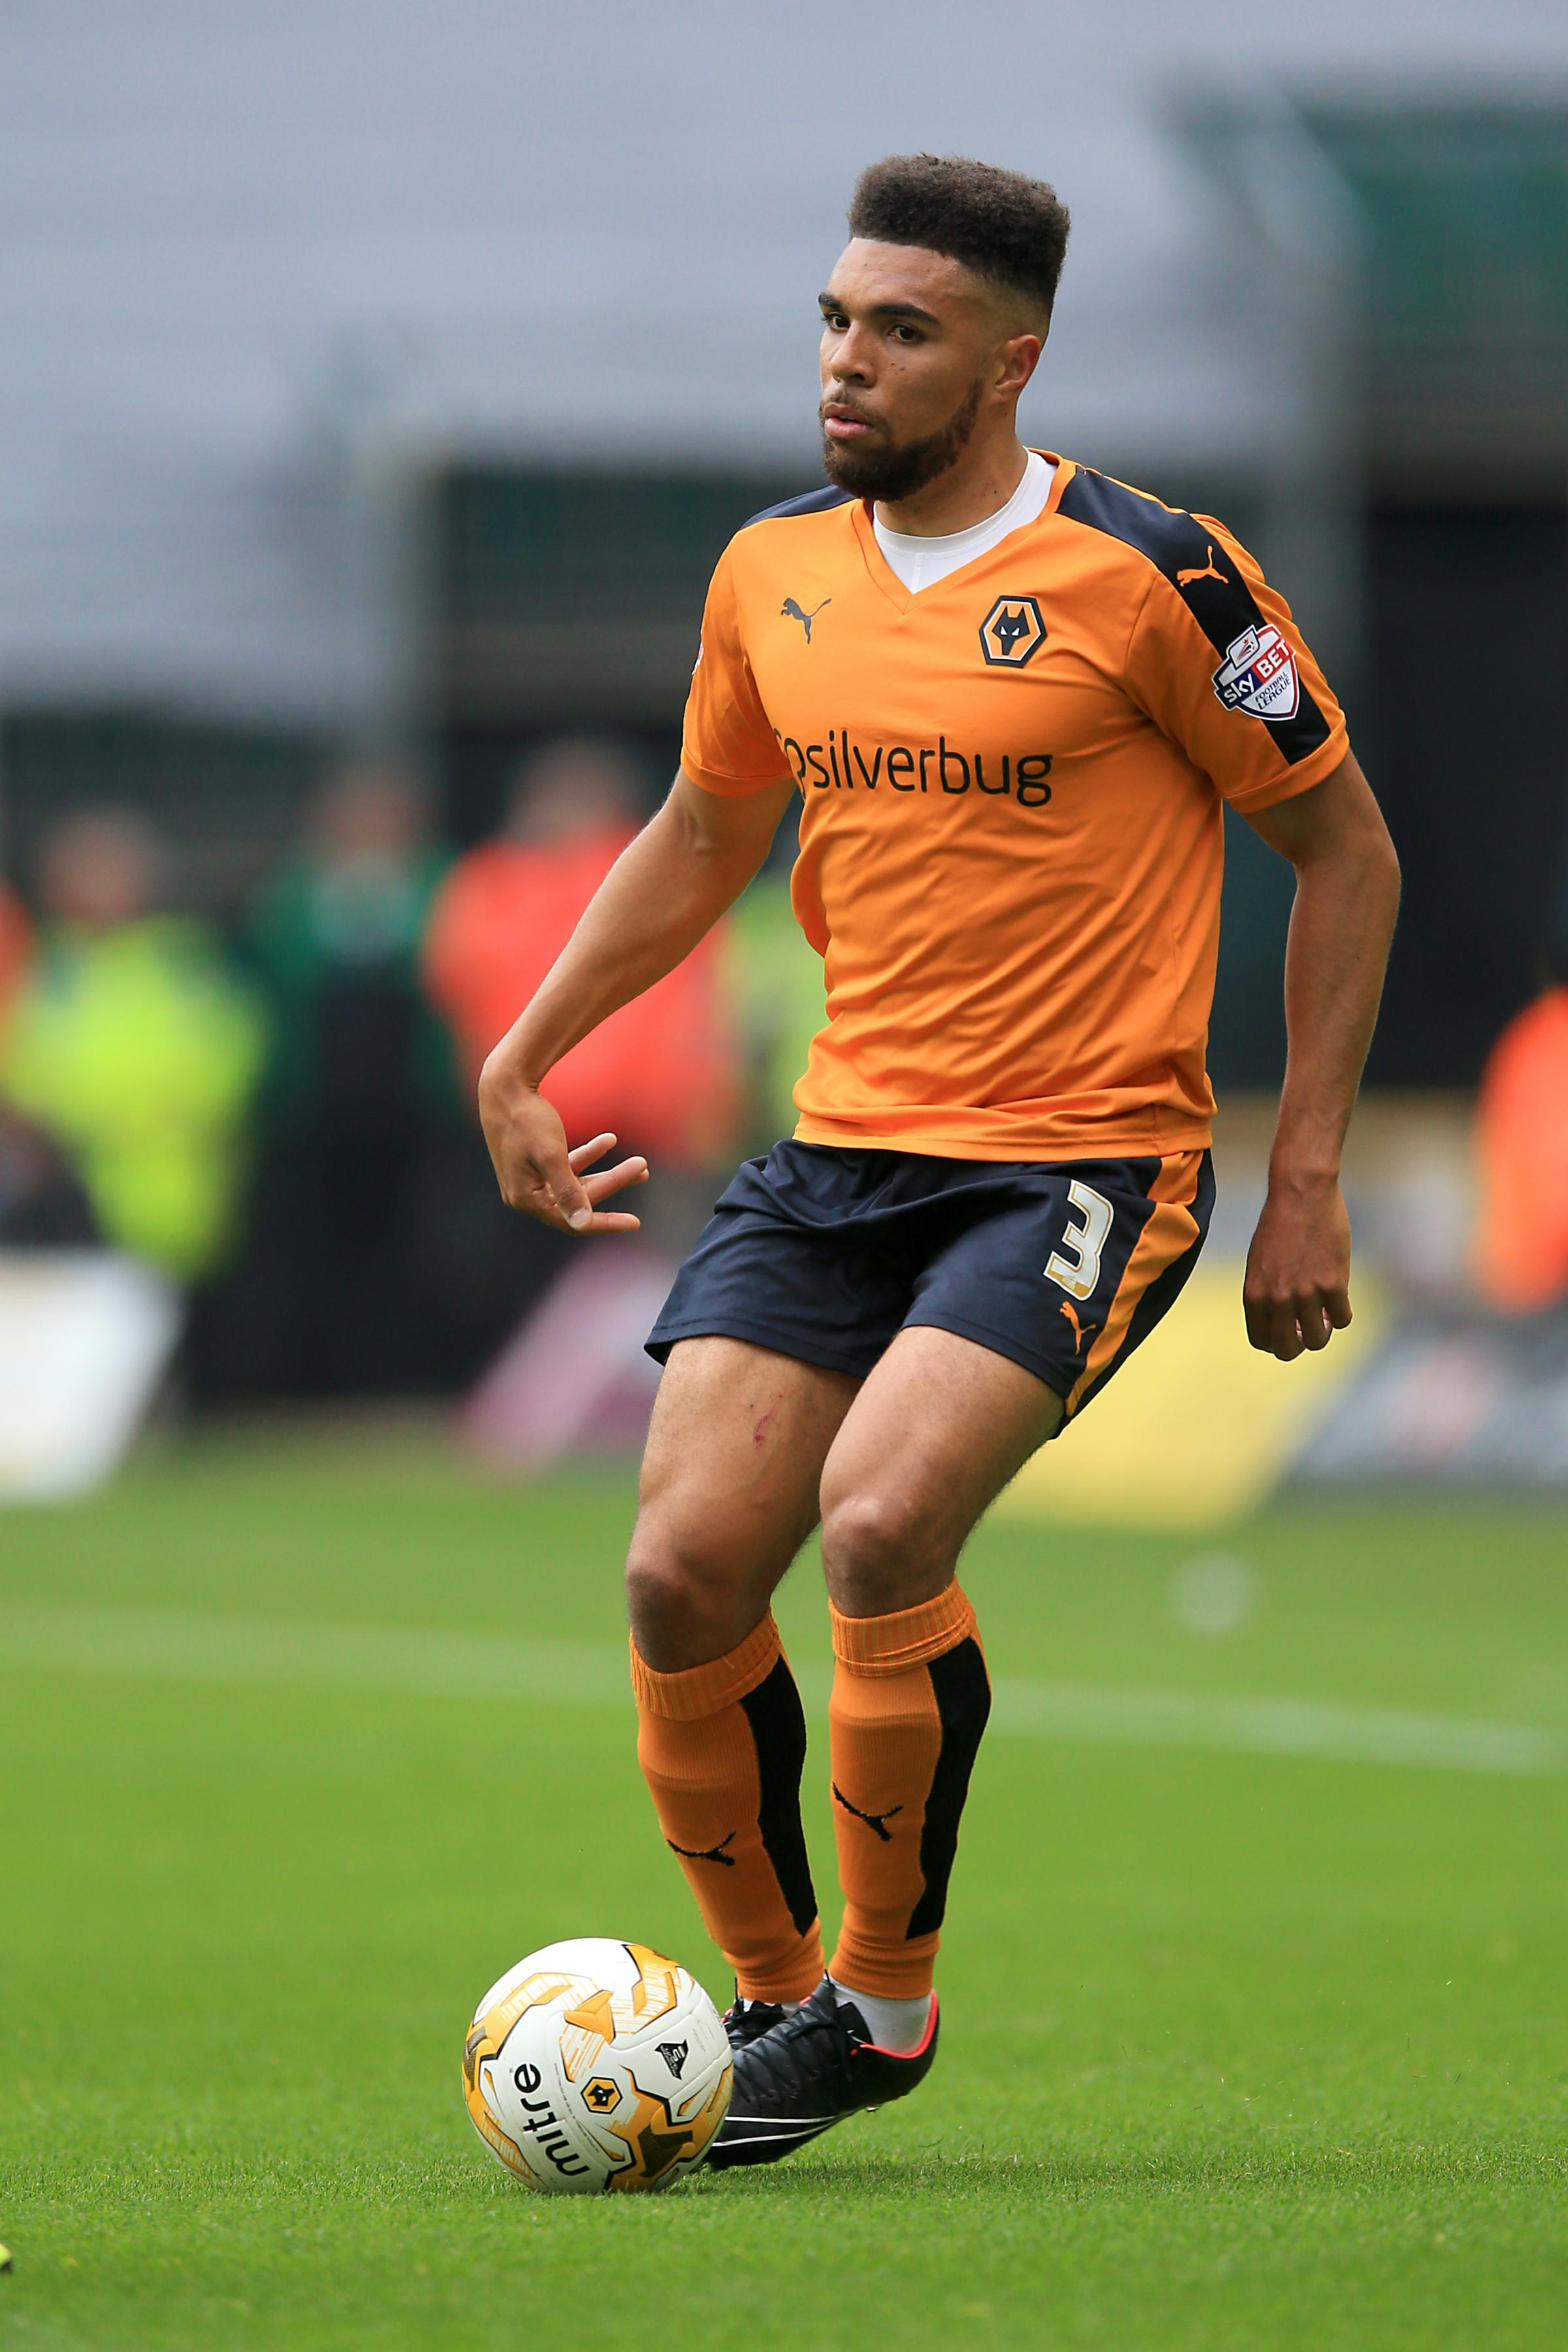 Training with Blues - former Wolverhampton Wanderers defender Scott Golbourne